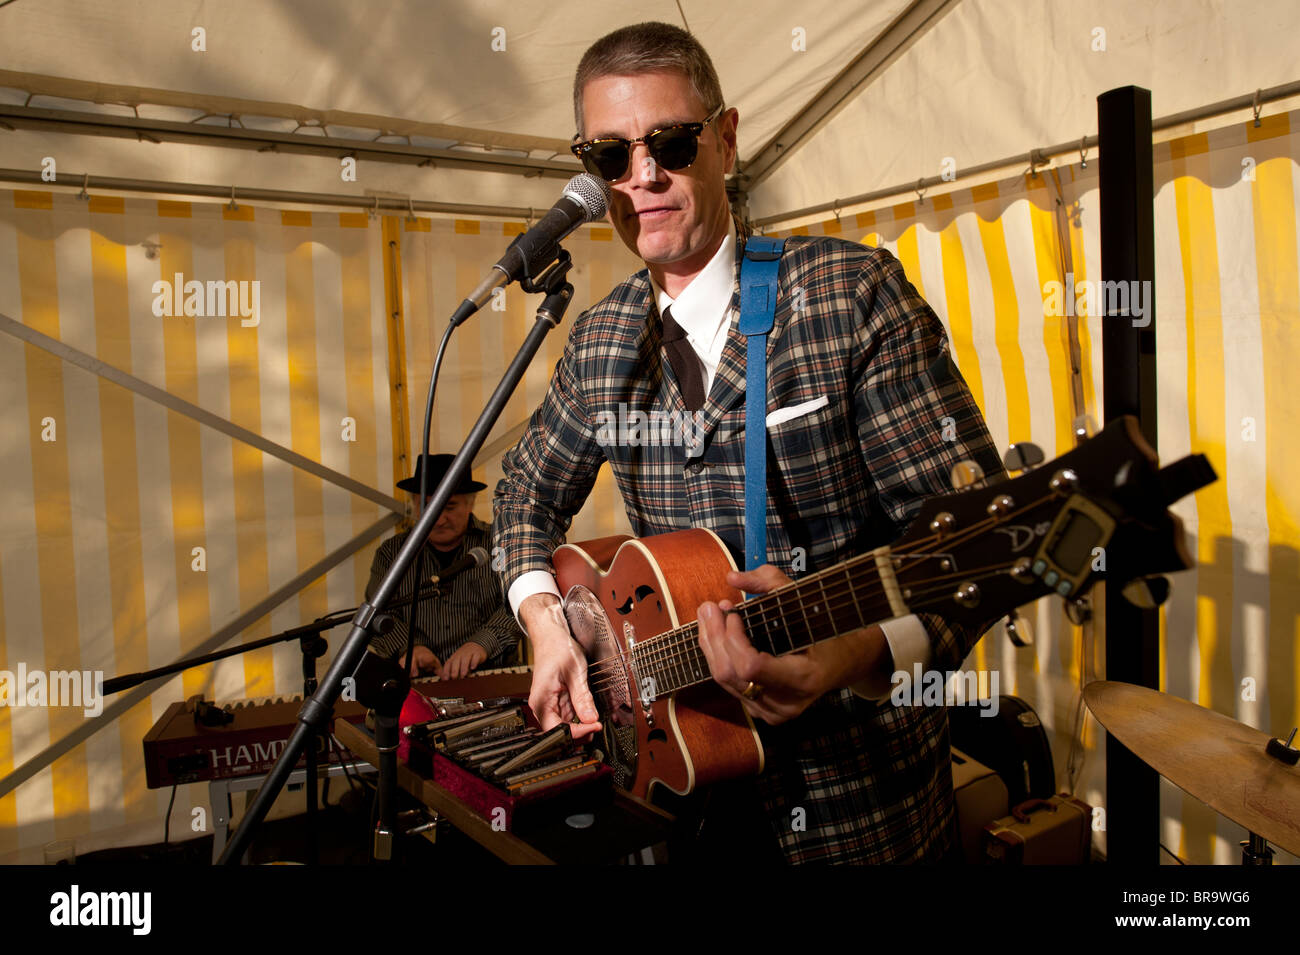 A cool man wearing sunglasses playing a semi acoustic guitar in a band, UK - Stock Image